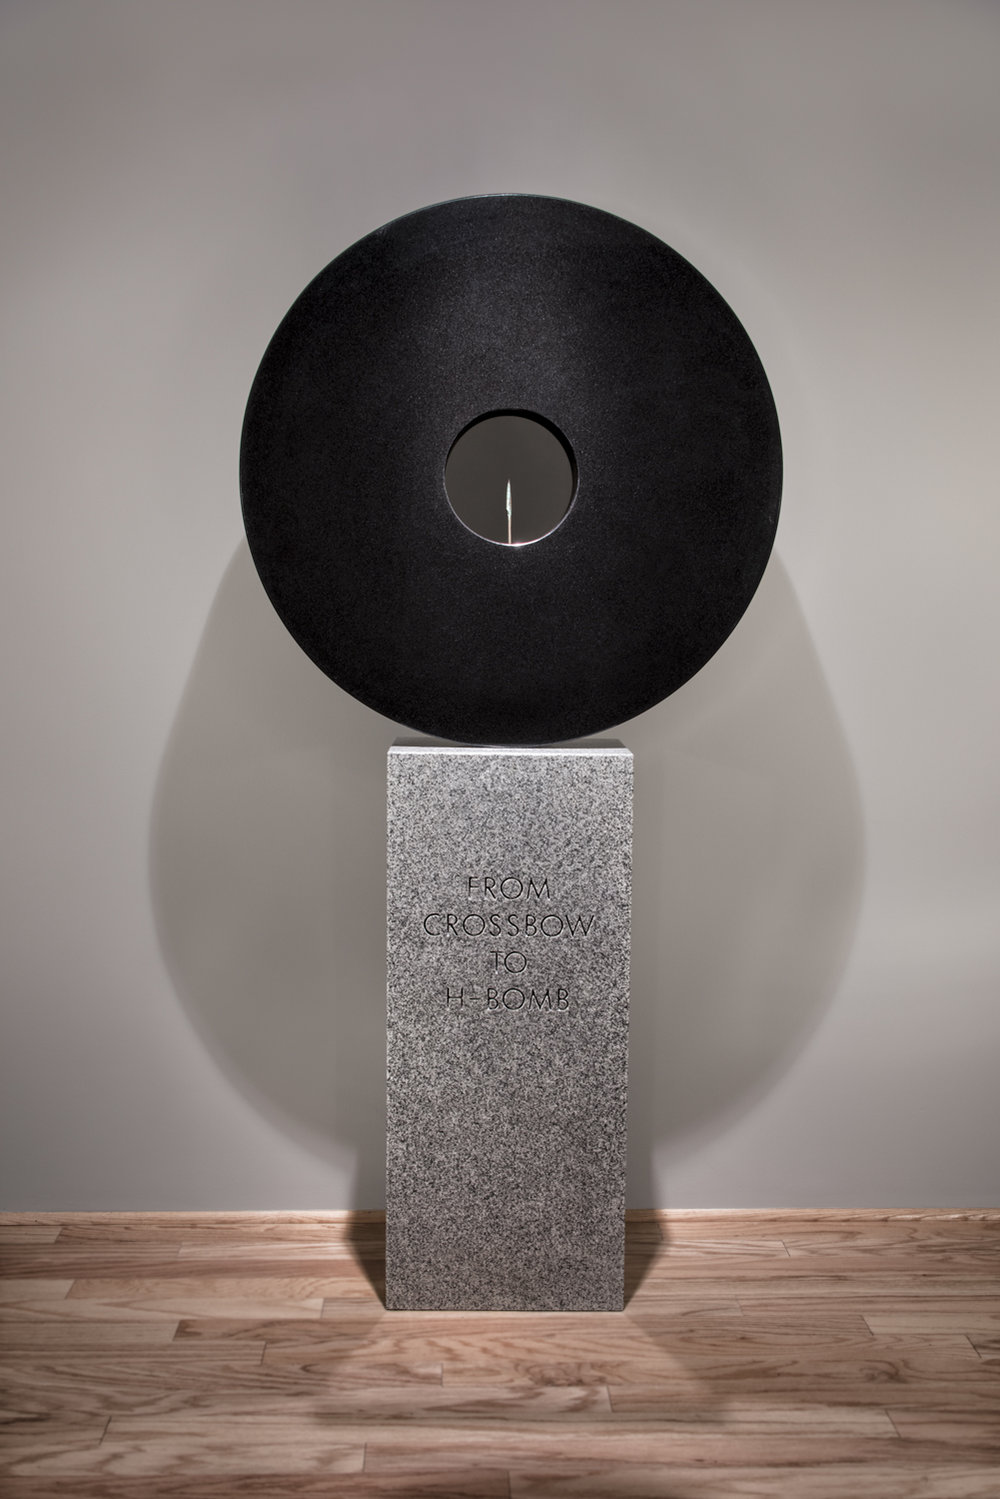 Granite and Bronze                                                                                  74 x 36 x 10 in | 188 x 91.4 x 25.4 cm                                                                                                                                       2016